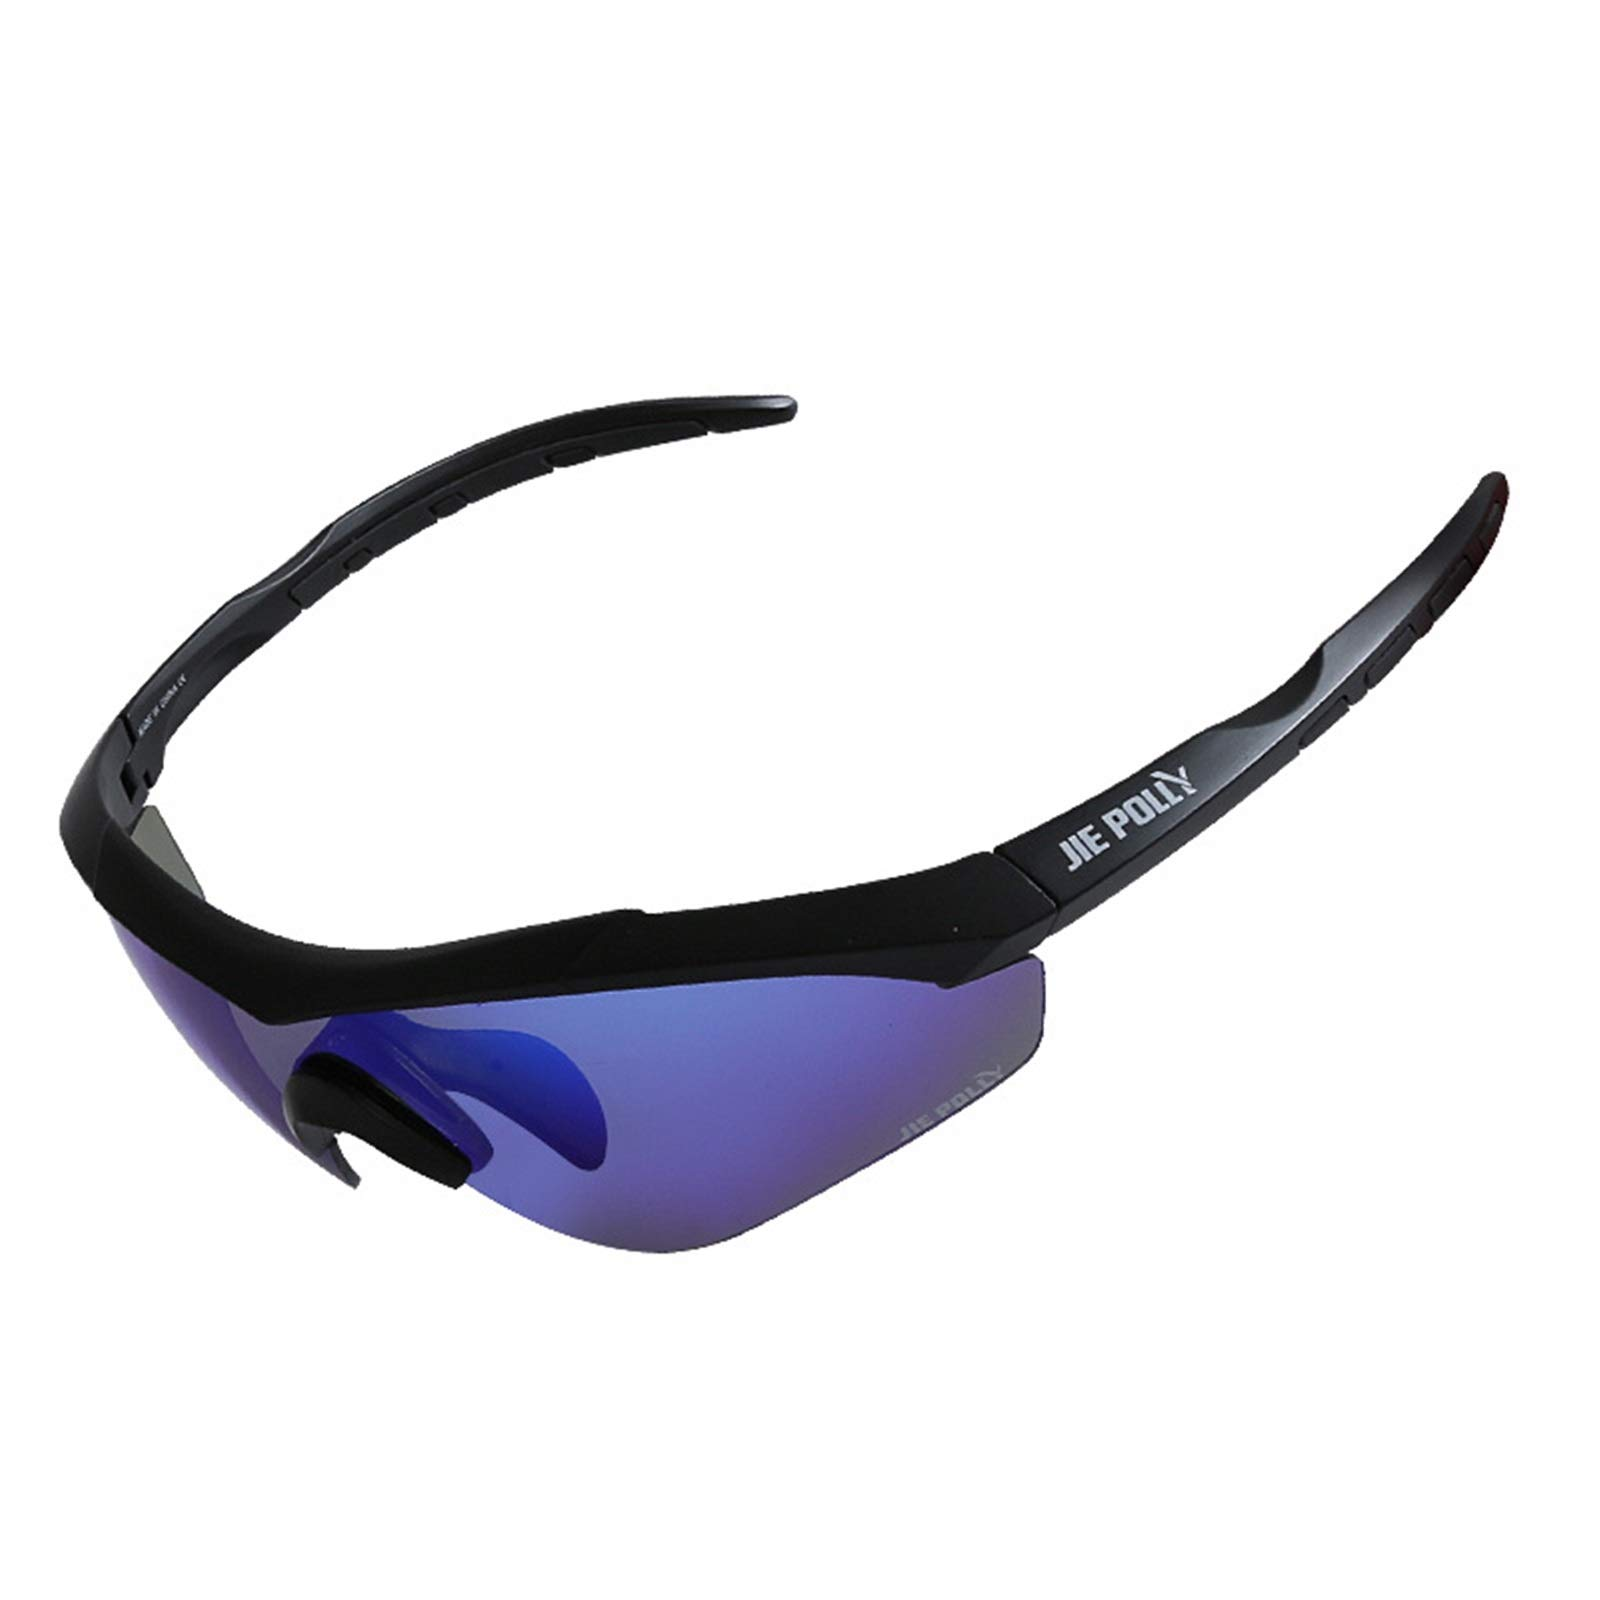 Adisaer Winter Sport Protection Goggles Tactical Goggles Windshield Anti-Shock Bulletproof Glasses Black for Adults